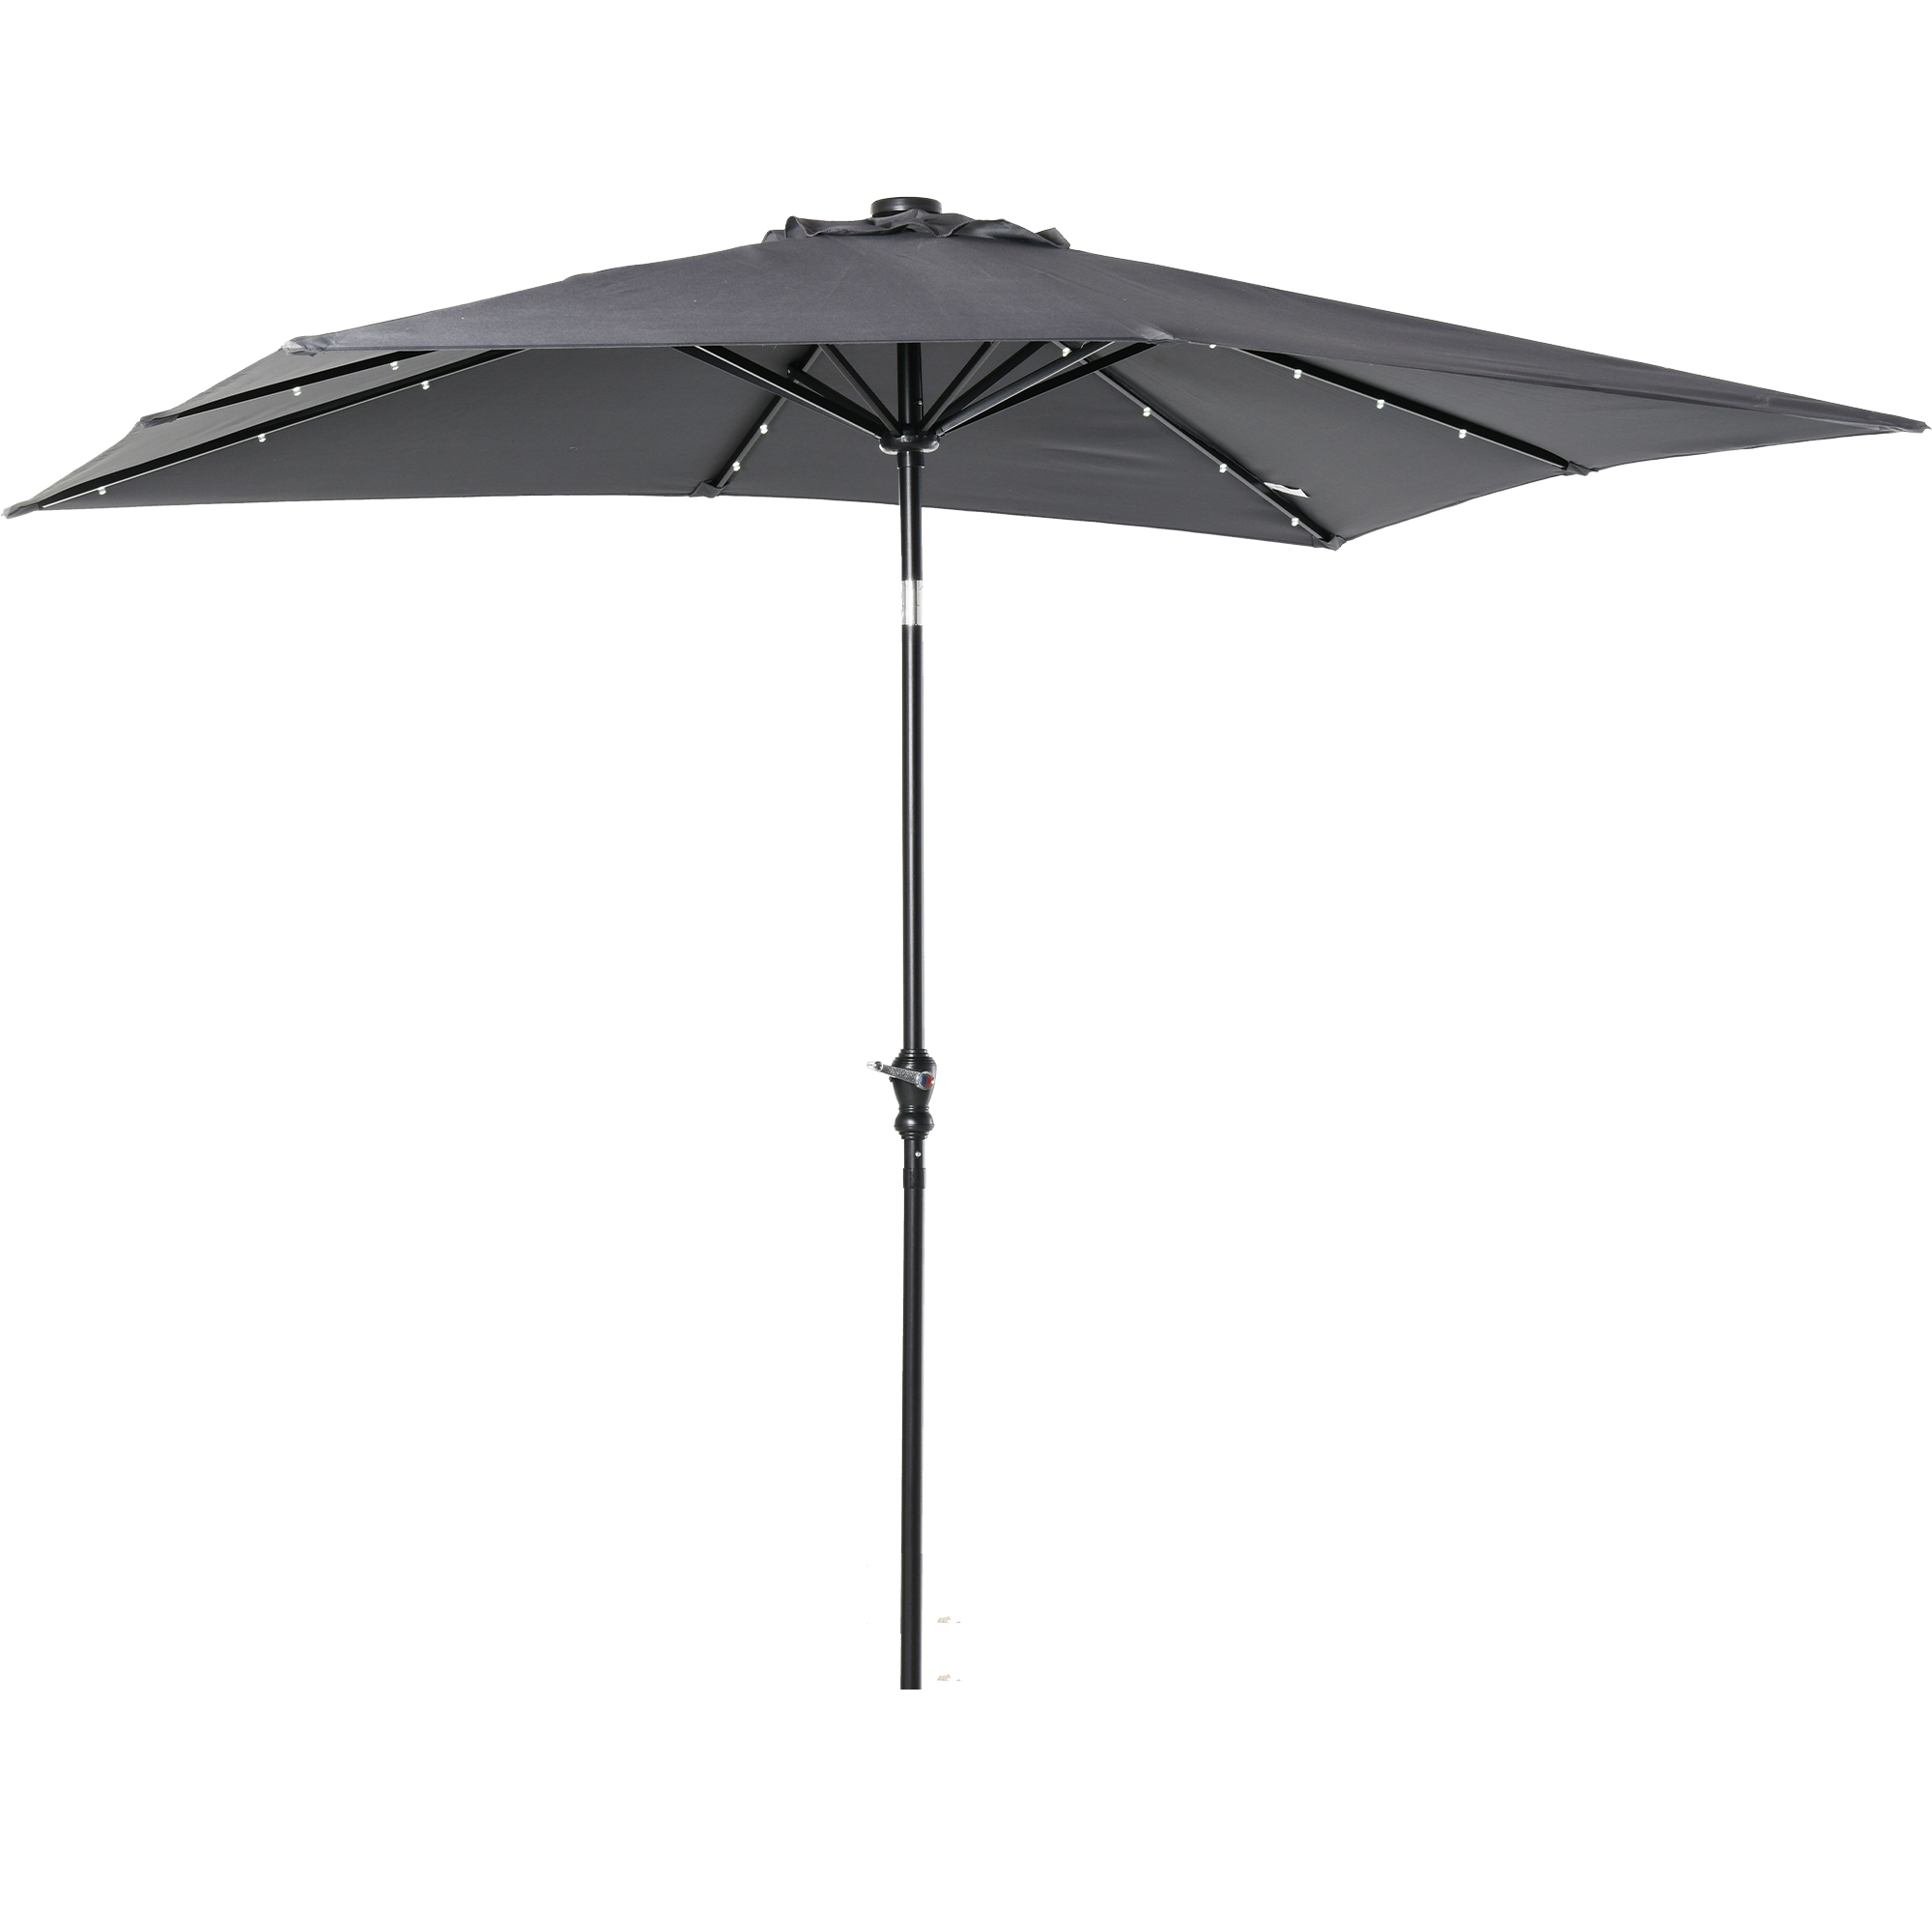 Parasol lumineux rectangulaire inclinable gris